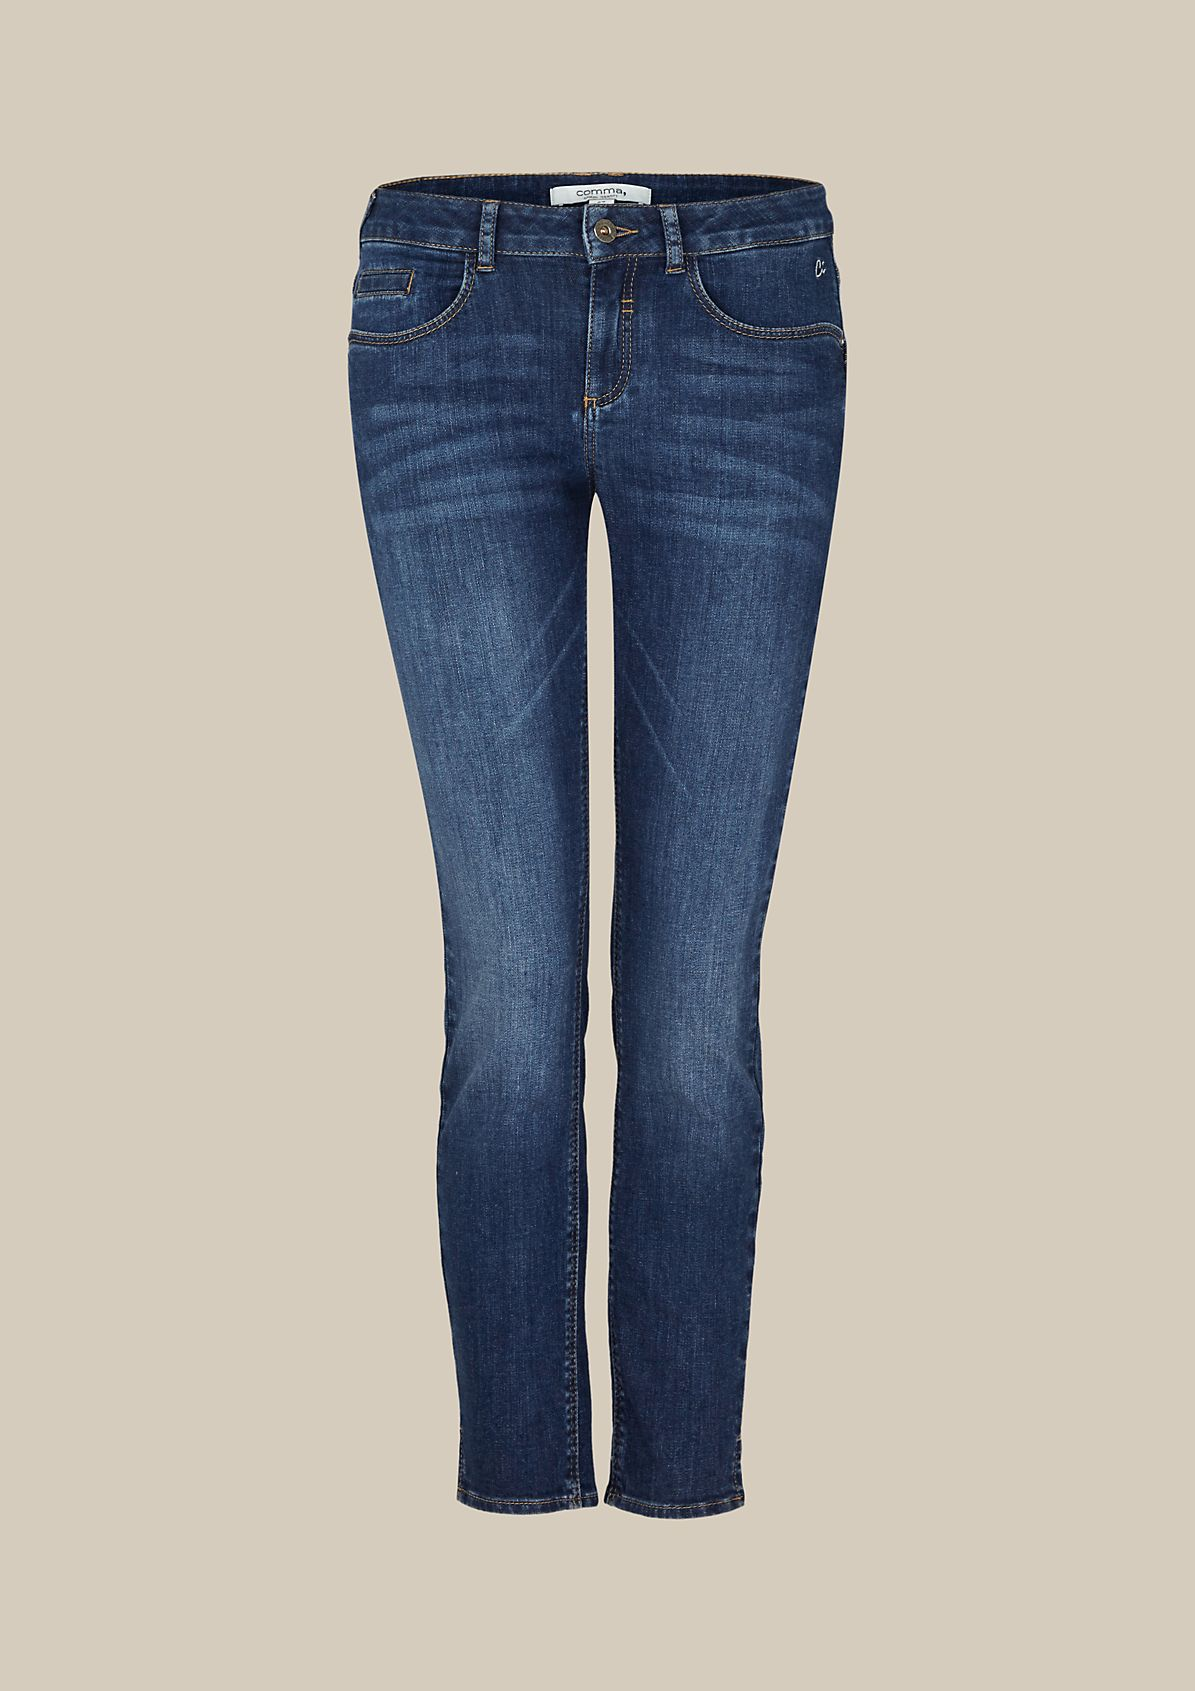 Lightweight jeans with a beautiful vintage finish from s.Oliver